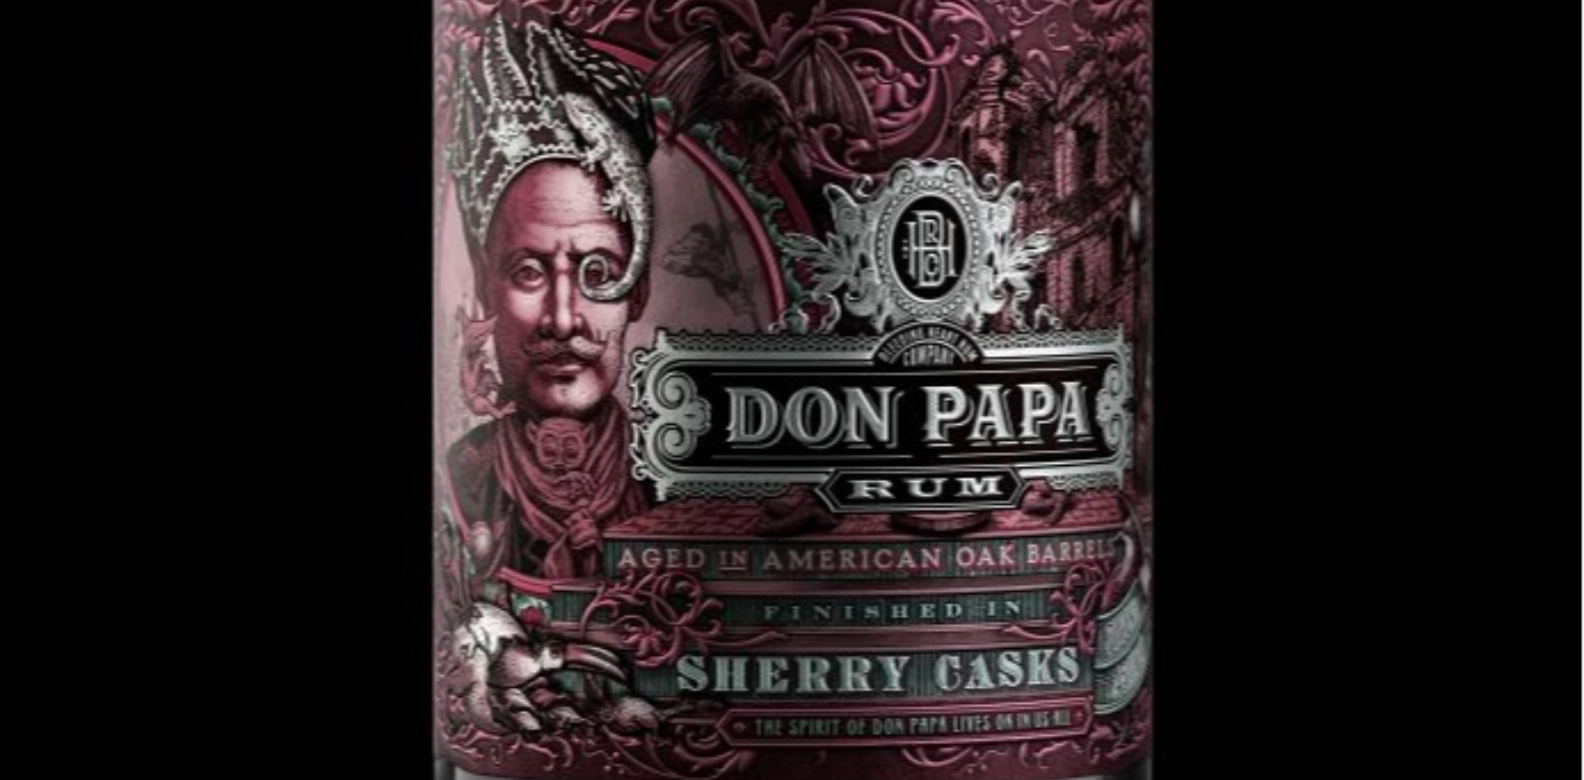 Don Papa Rum Launches New Limited Edition Sherry Cask Finish photo